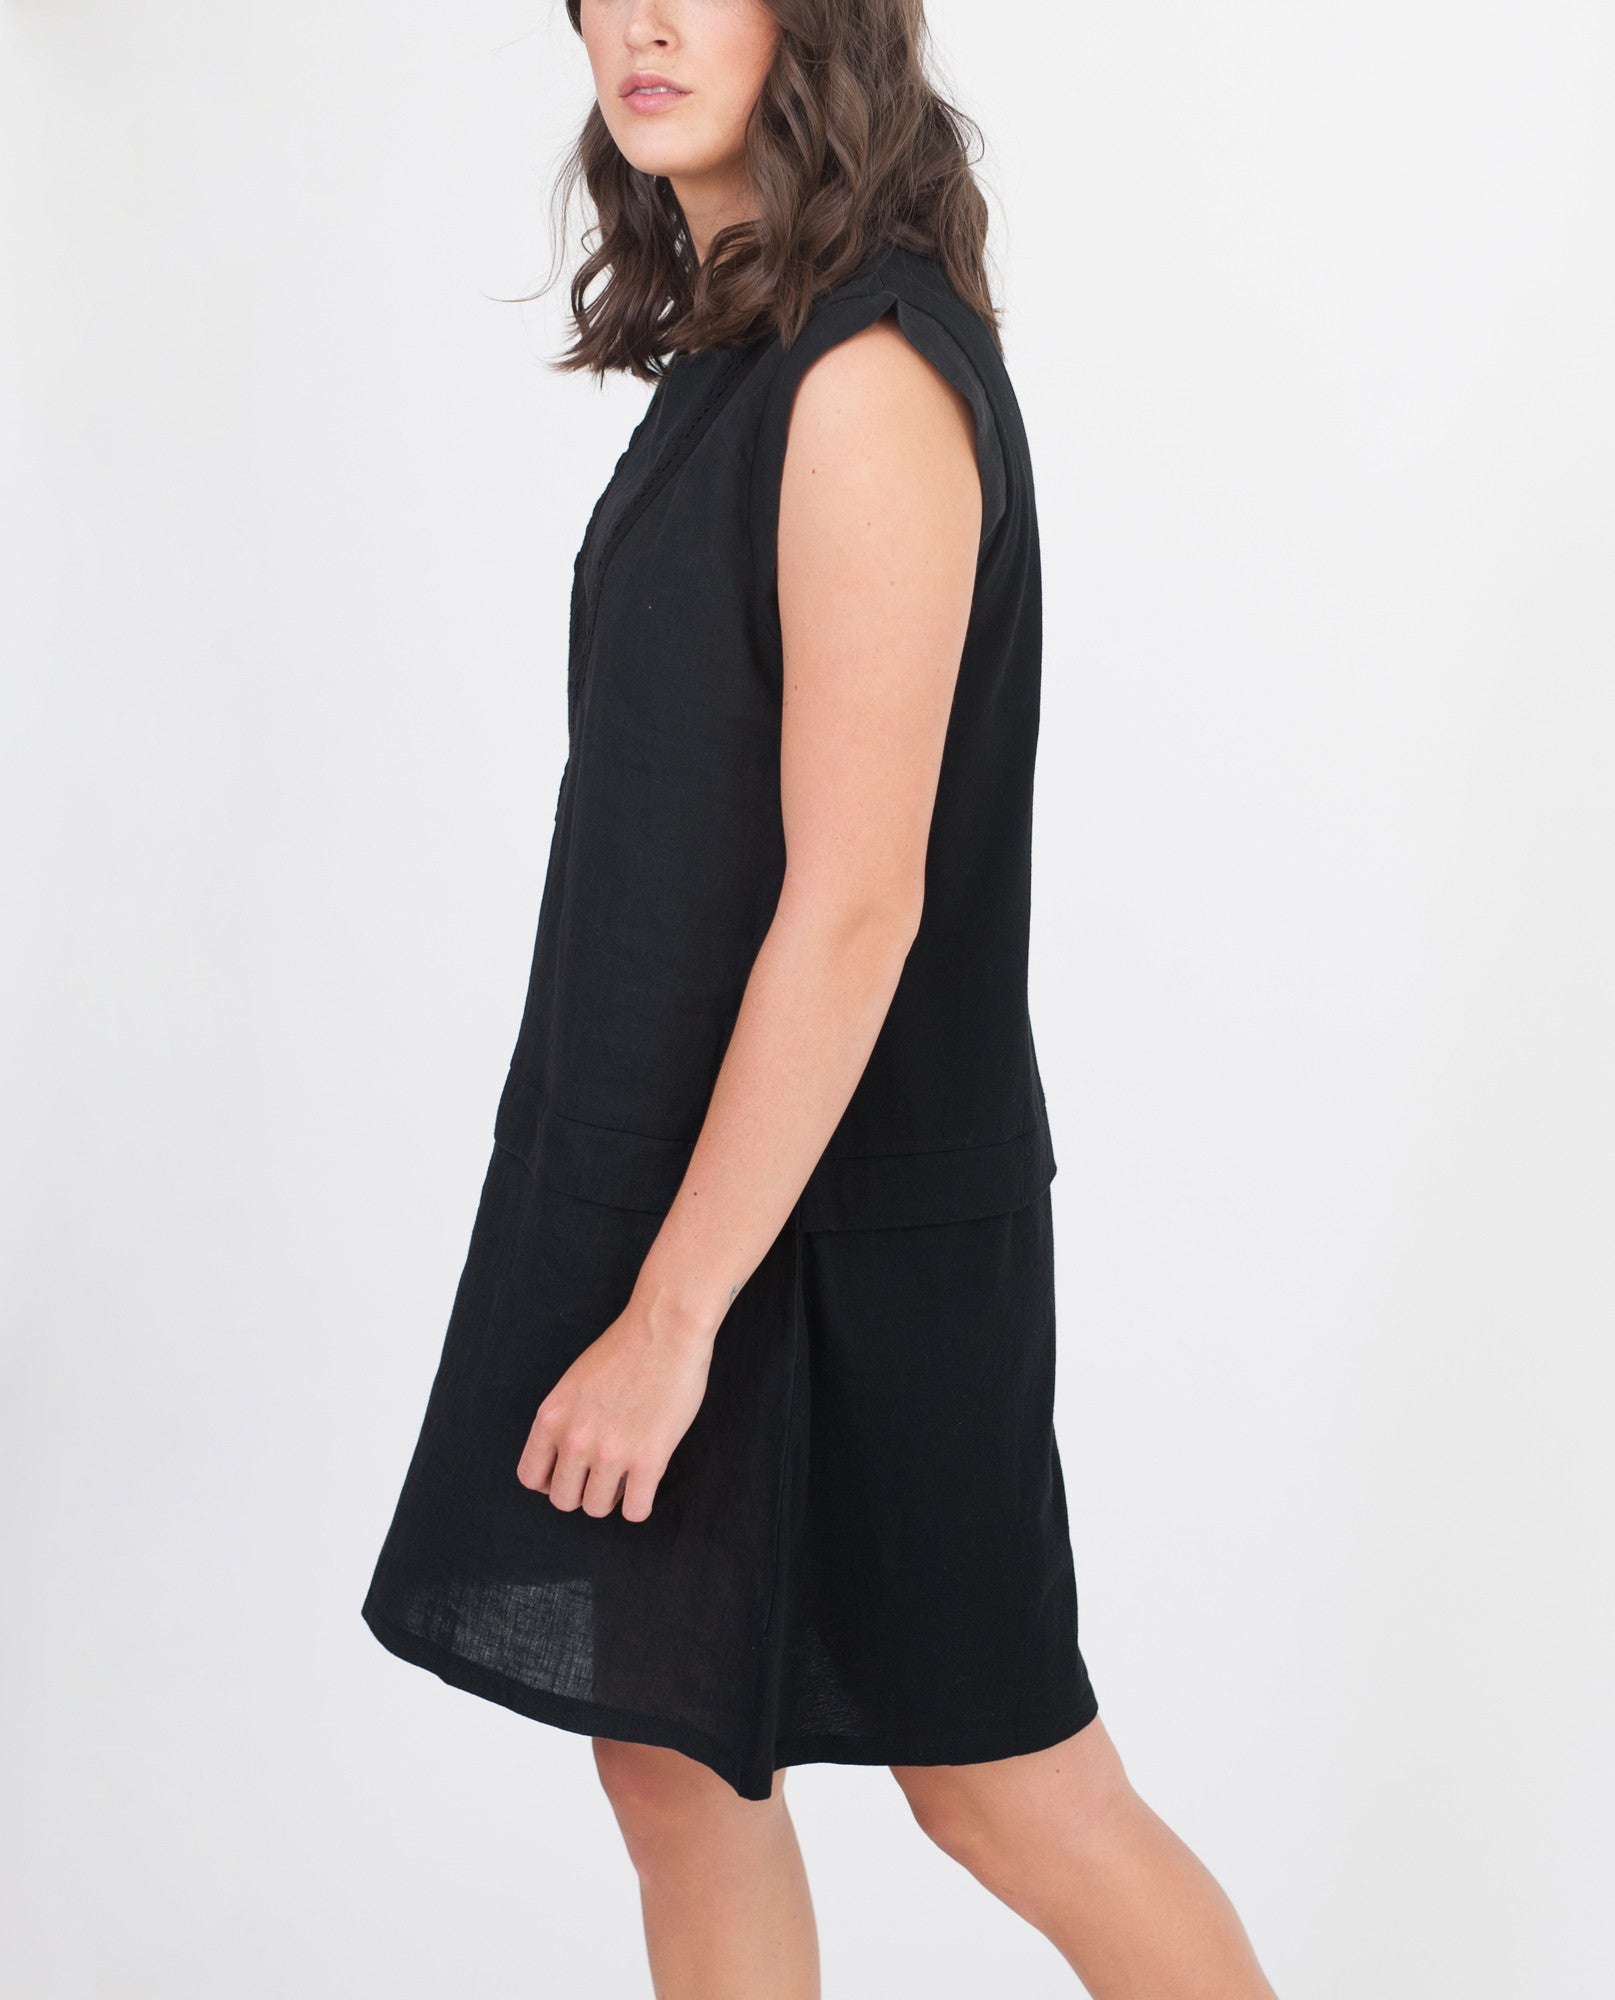 HADLEY Organic Cotton And Linen Dress In Black